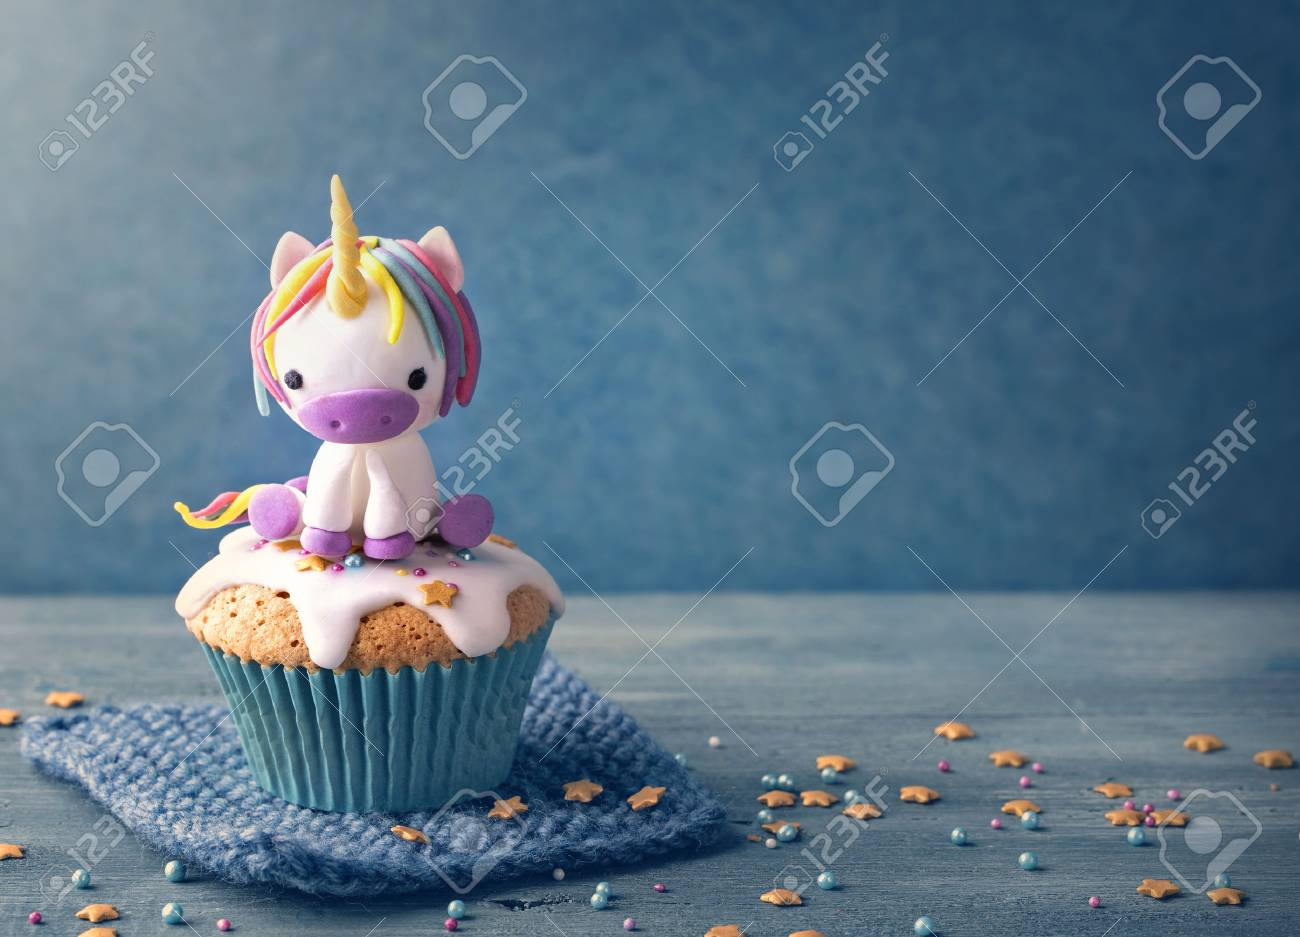 Unicorn cupcakes for a party - 78878980